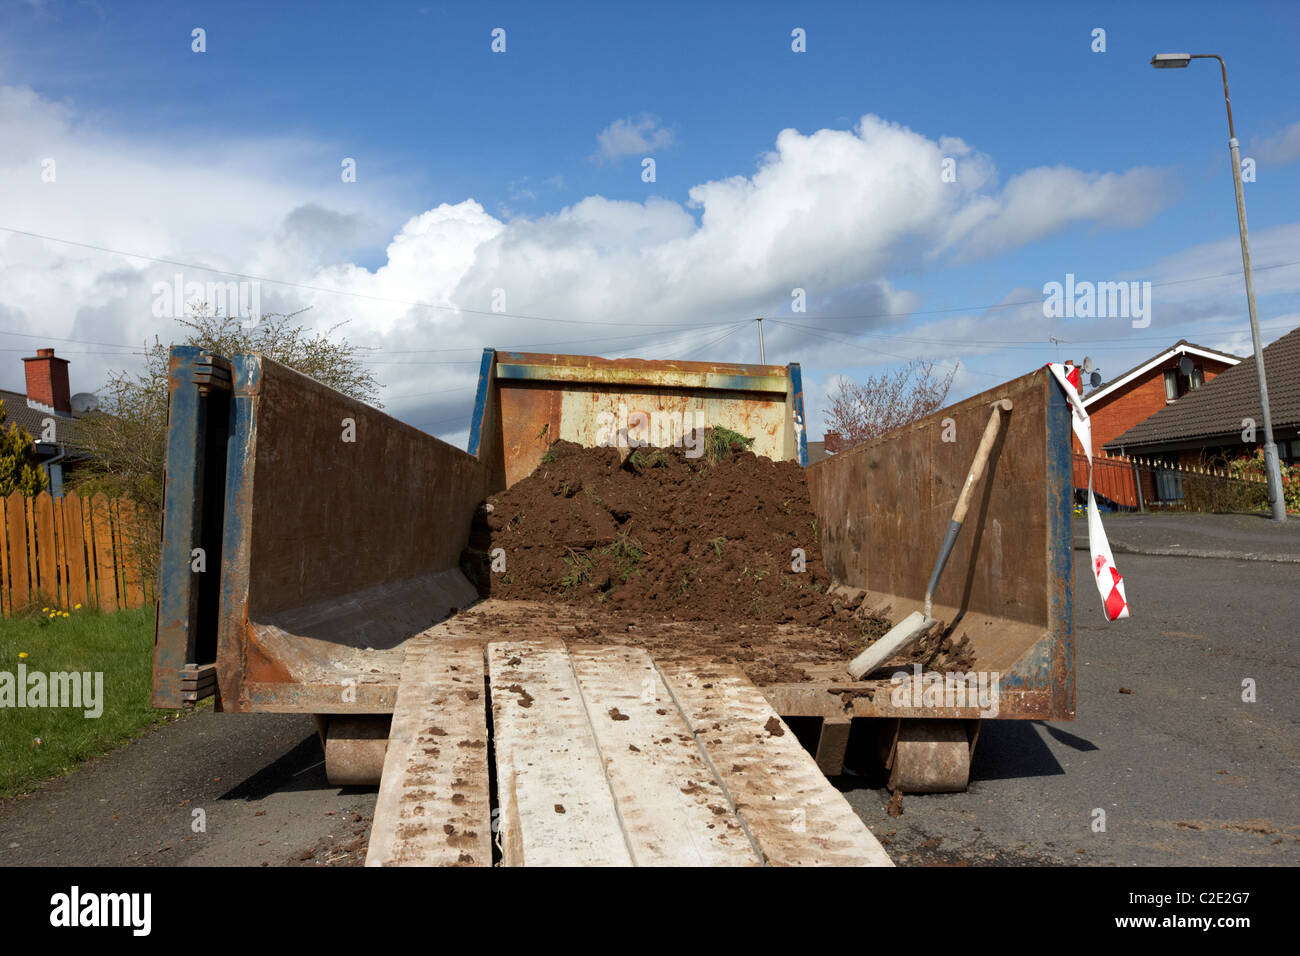 large roll on off building skip placed on a street in the uk - Stock Image